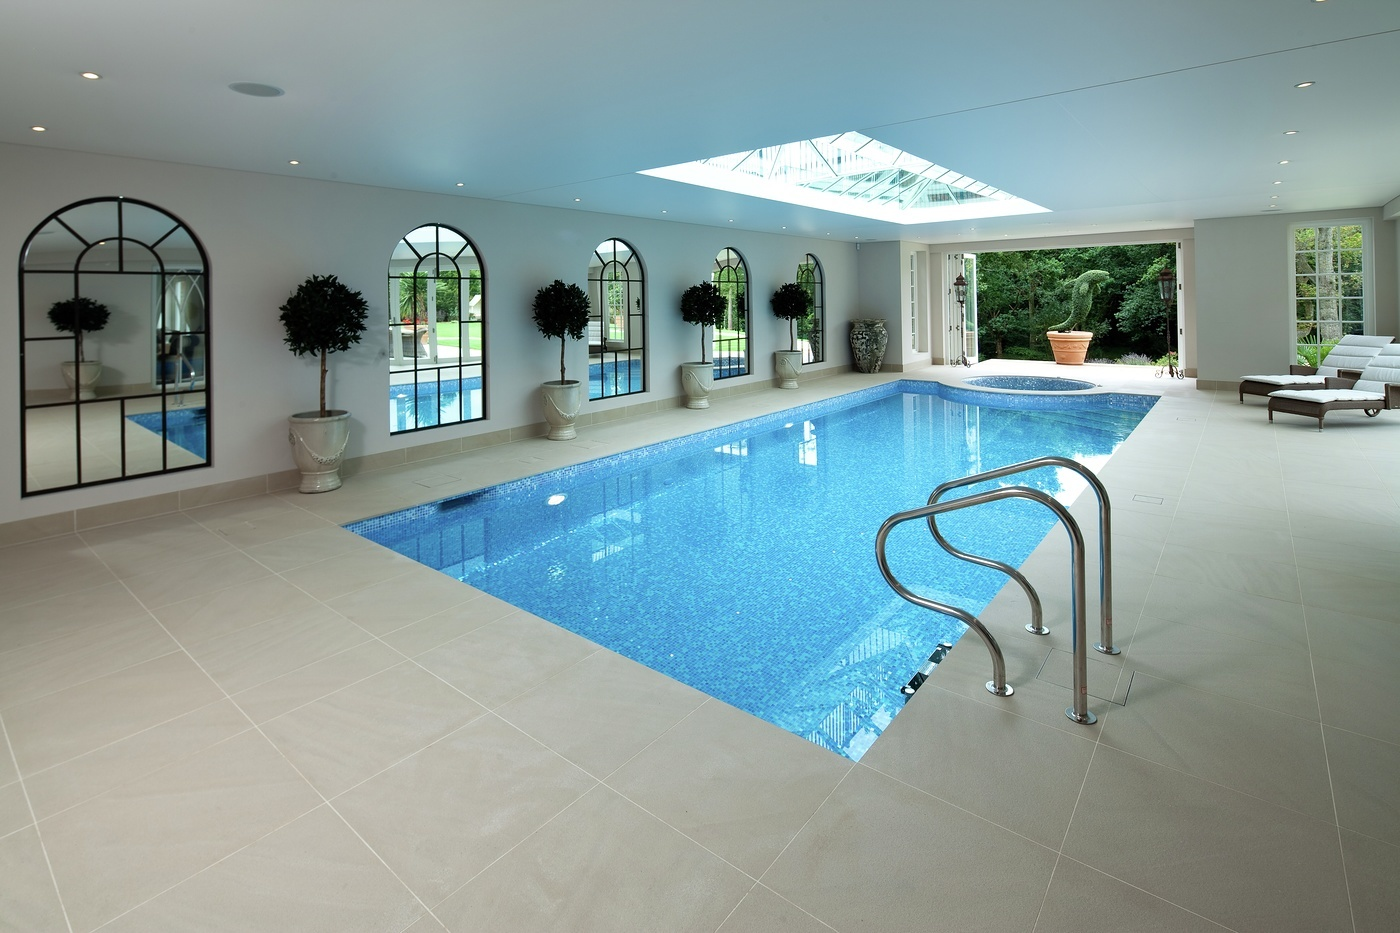 september-house-wentworth-estate-our-work-private-clients-ascot-design-view9.jpg